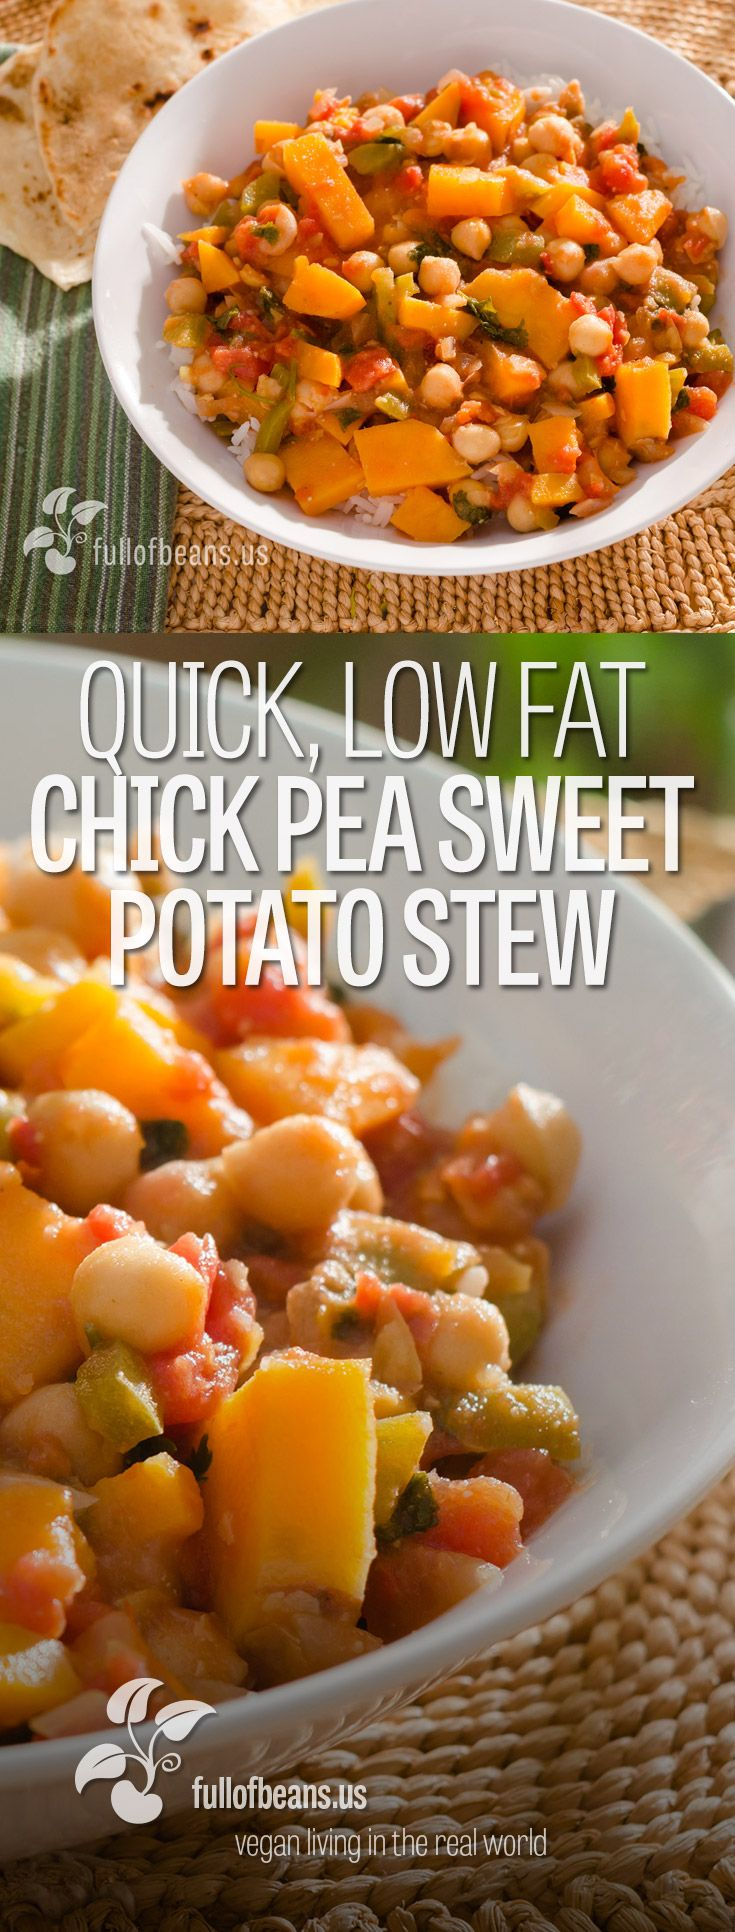 This vegan chickpea sweet potato stew is a quick, low fat and nutrient dense meal that is a great go to meal anytime! Recipe at fullofbeans.us!